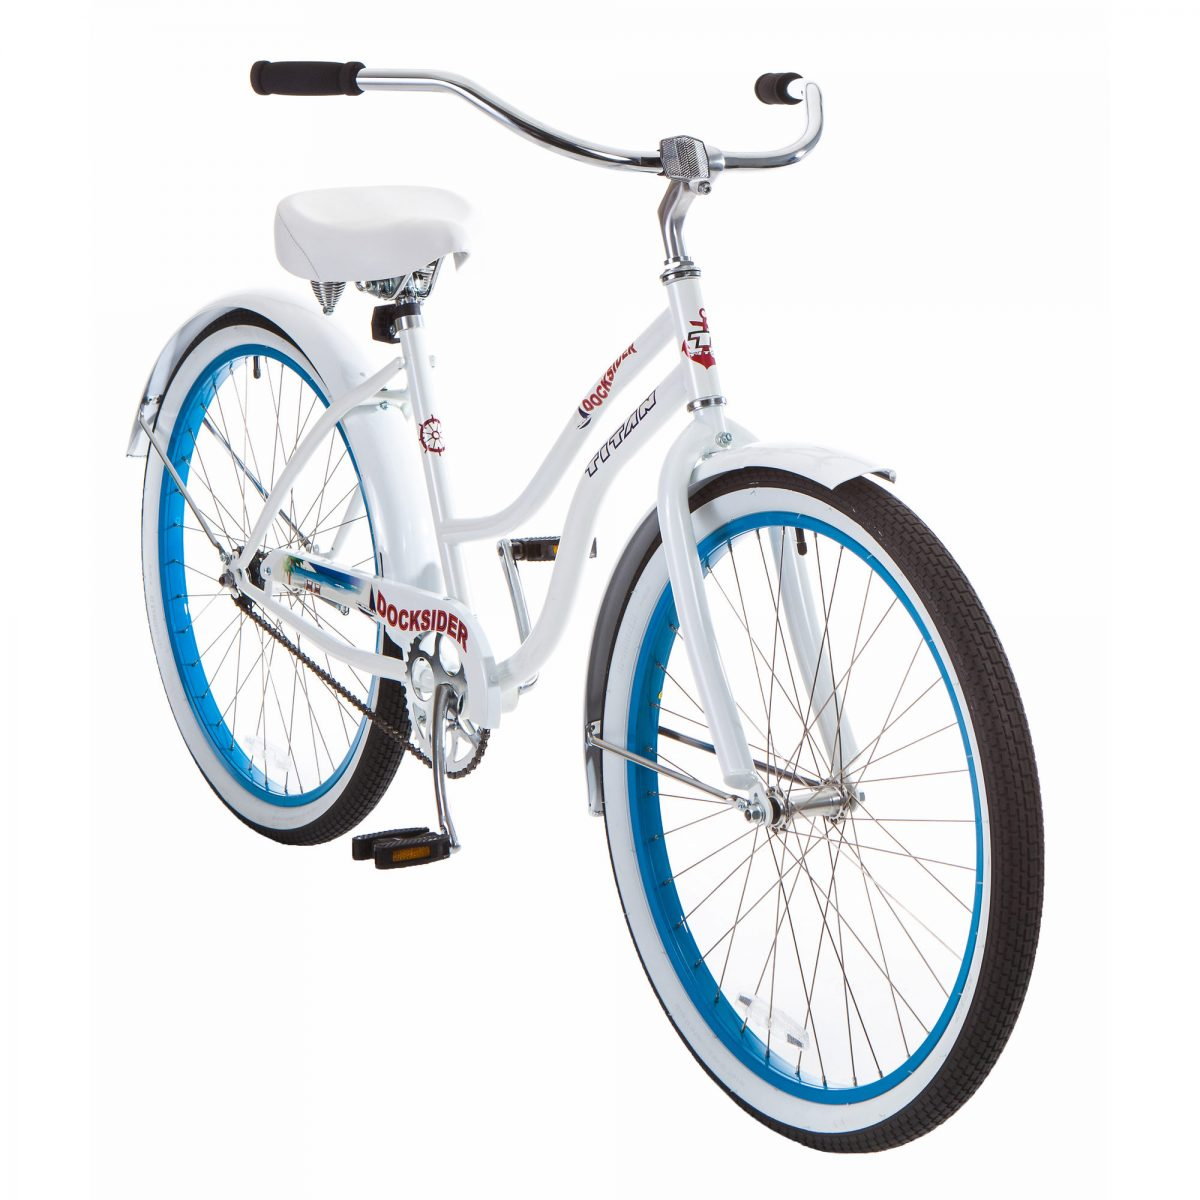 BJ's Titan Women's 26″ Cruiser Bicycle $269 Shipped